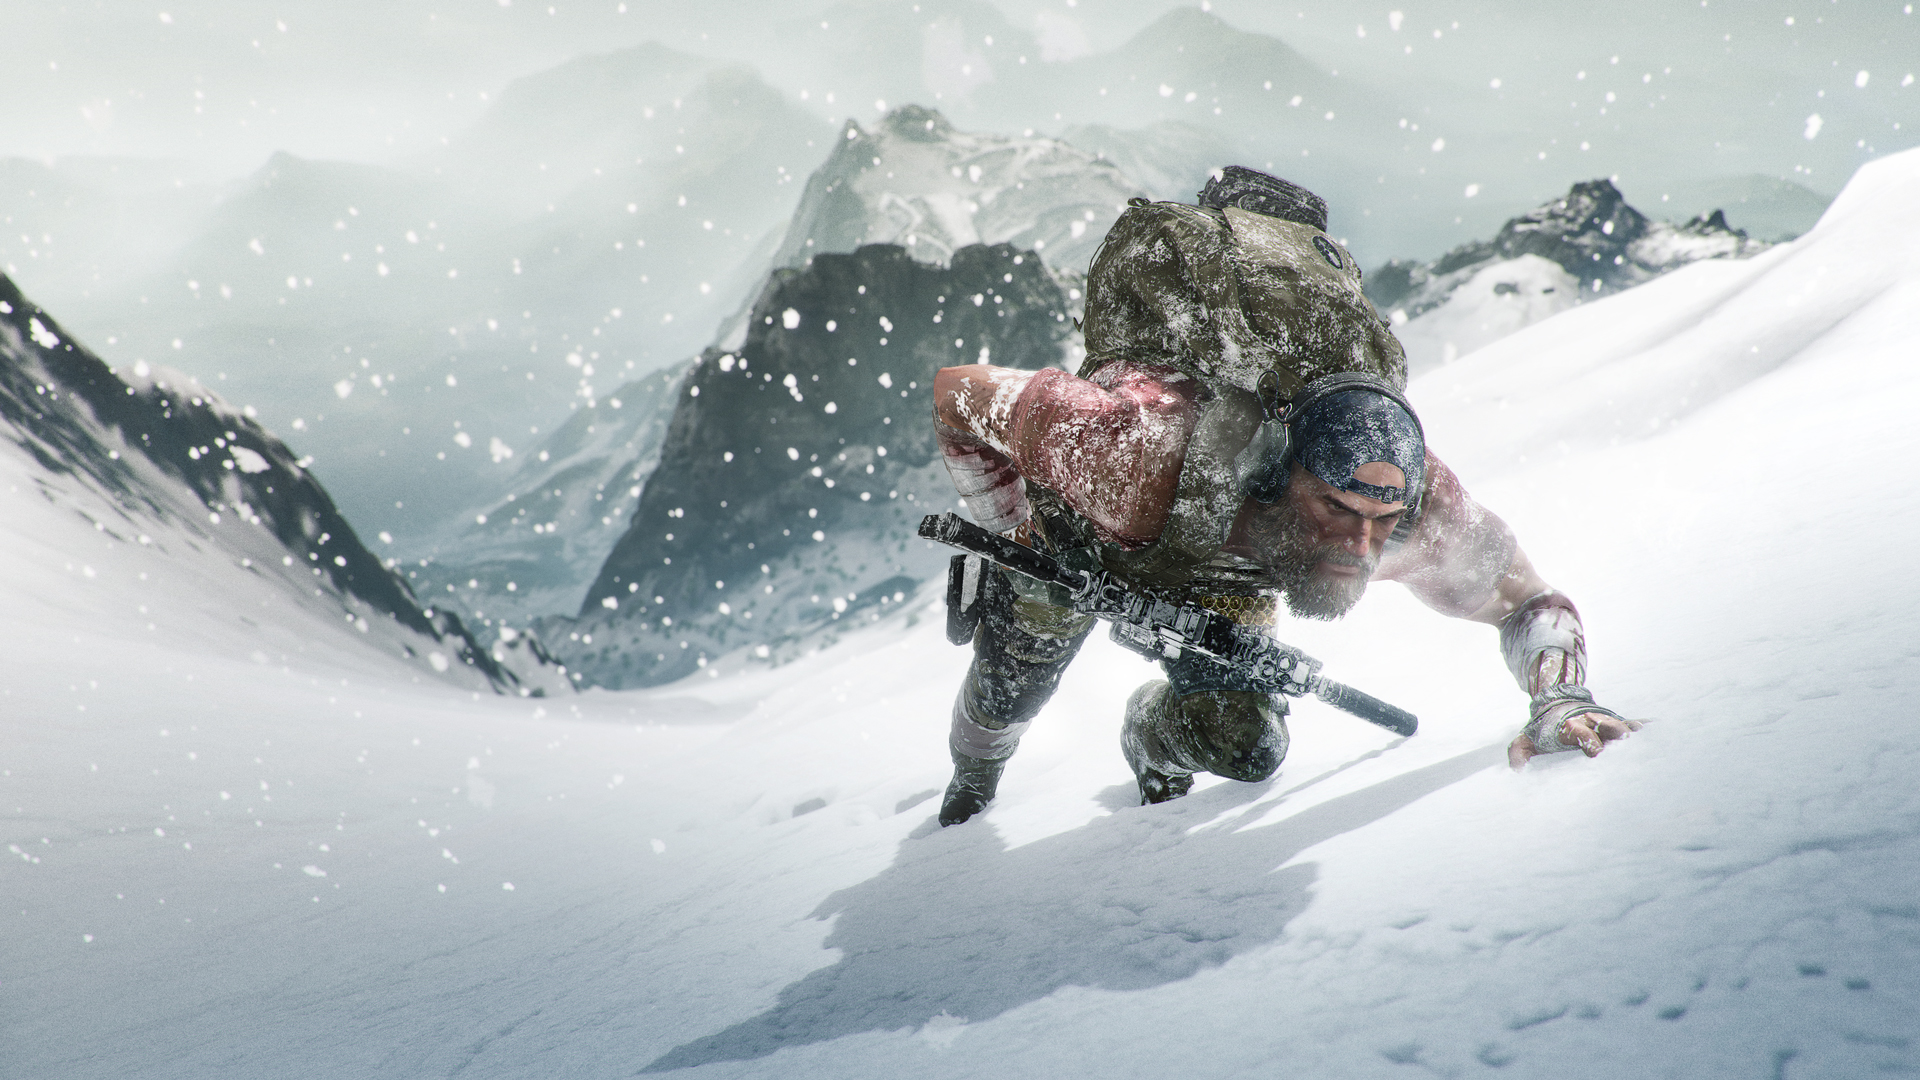 Ghost Recon Breakpoint's stamina buff undermines the game's survivalist promises